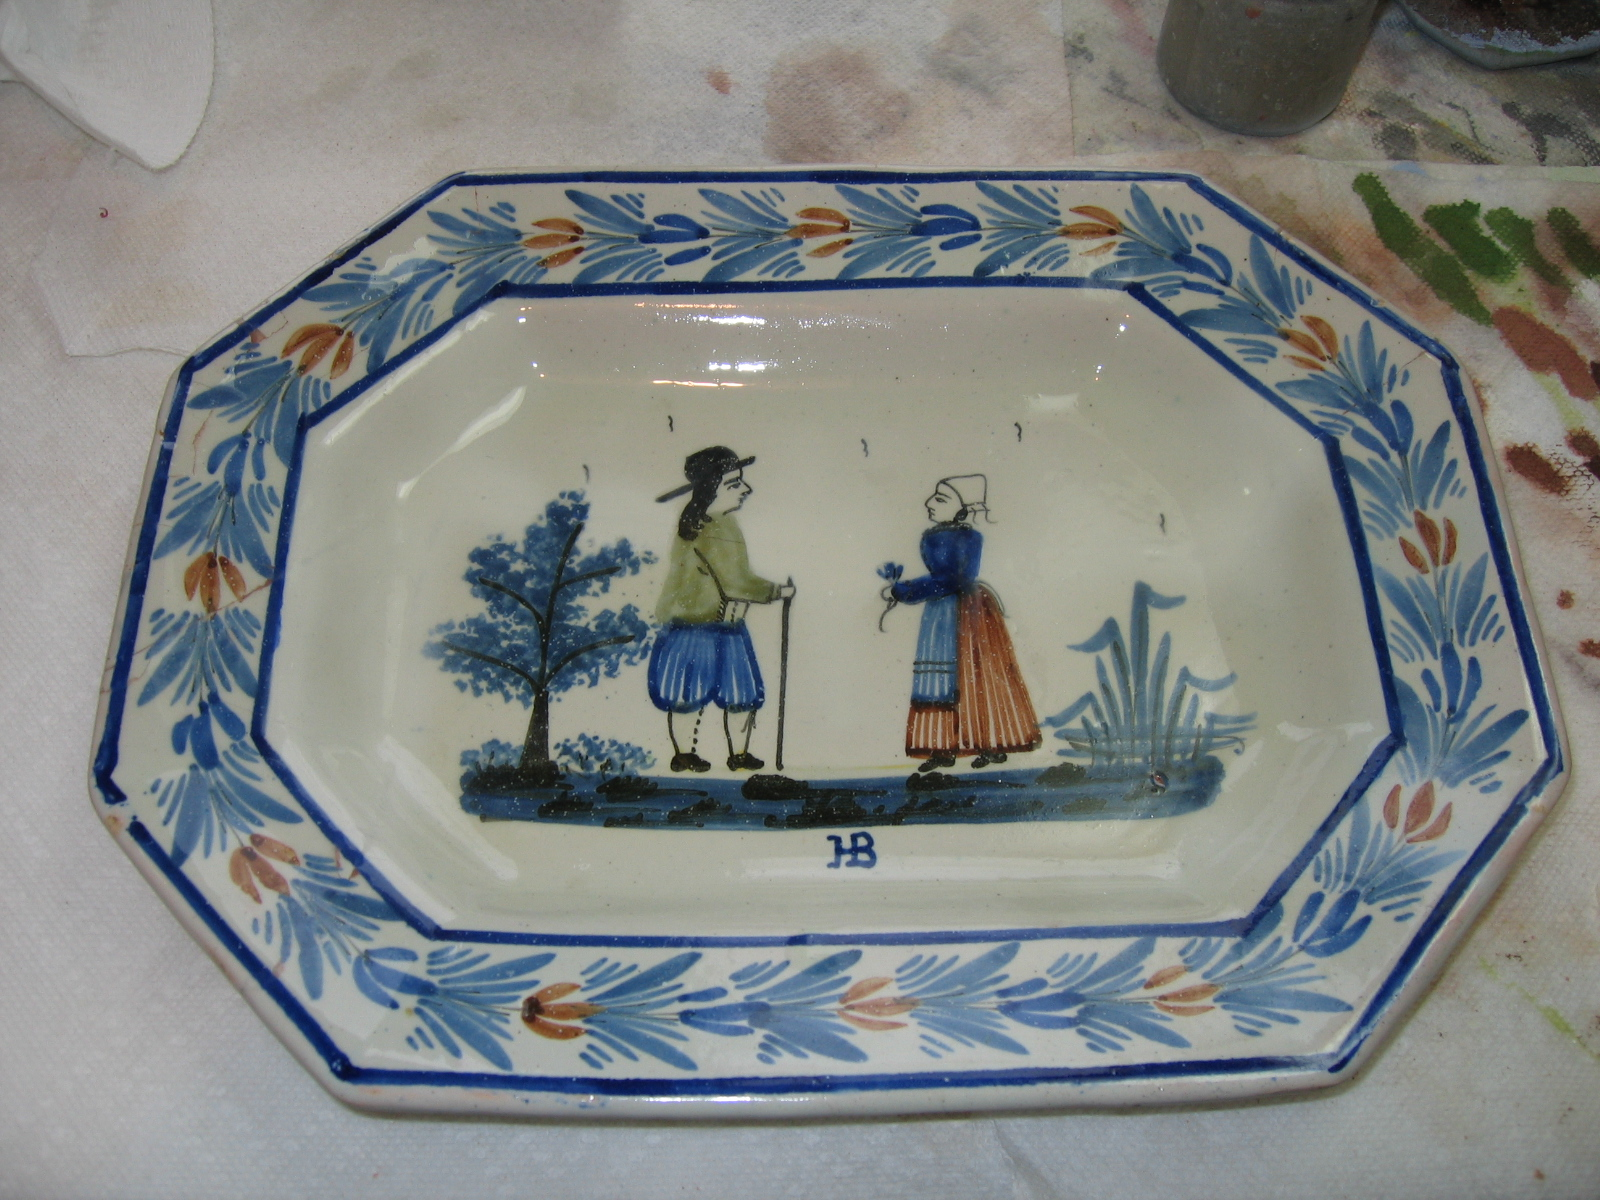 Restored Faience Plate